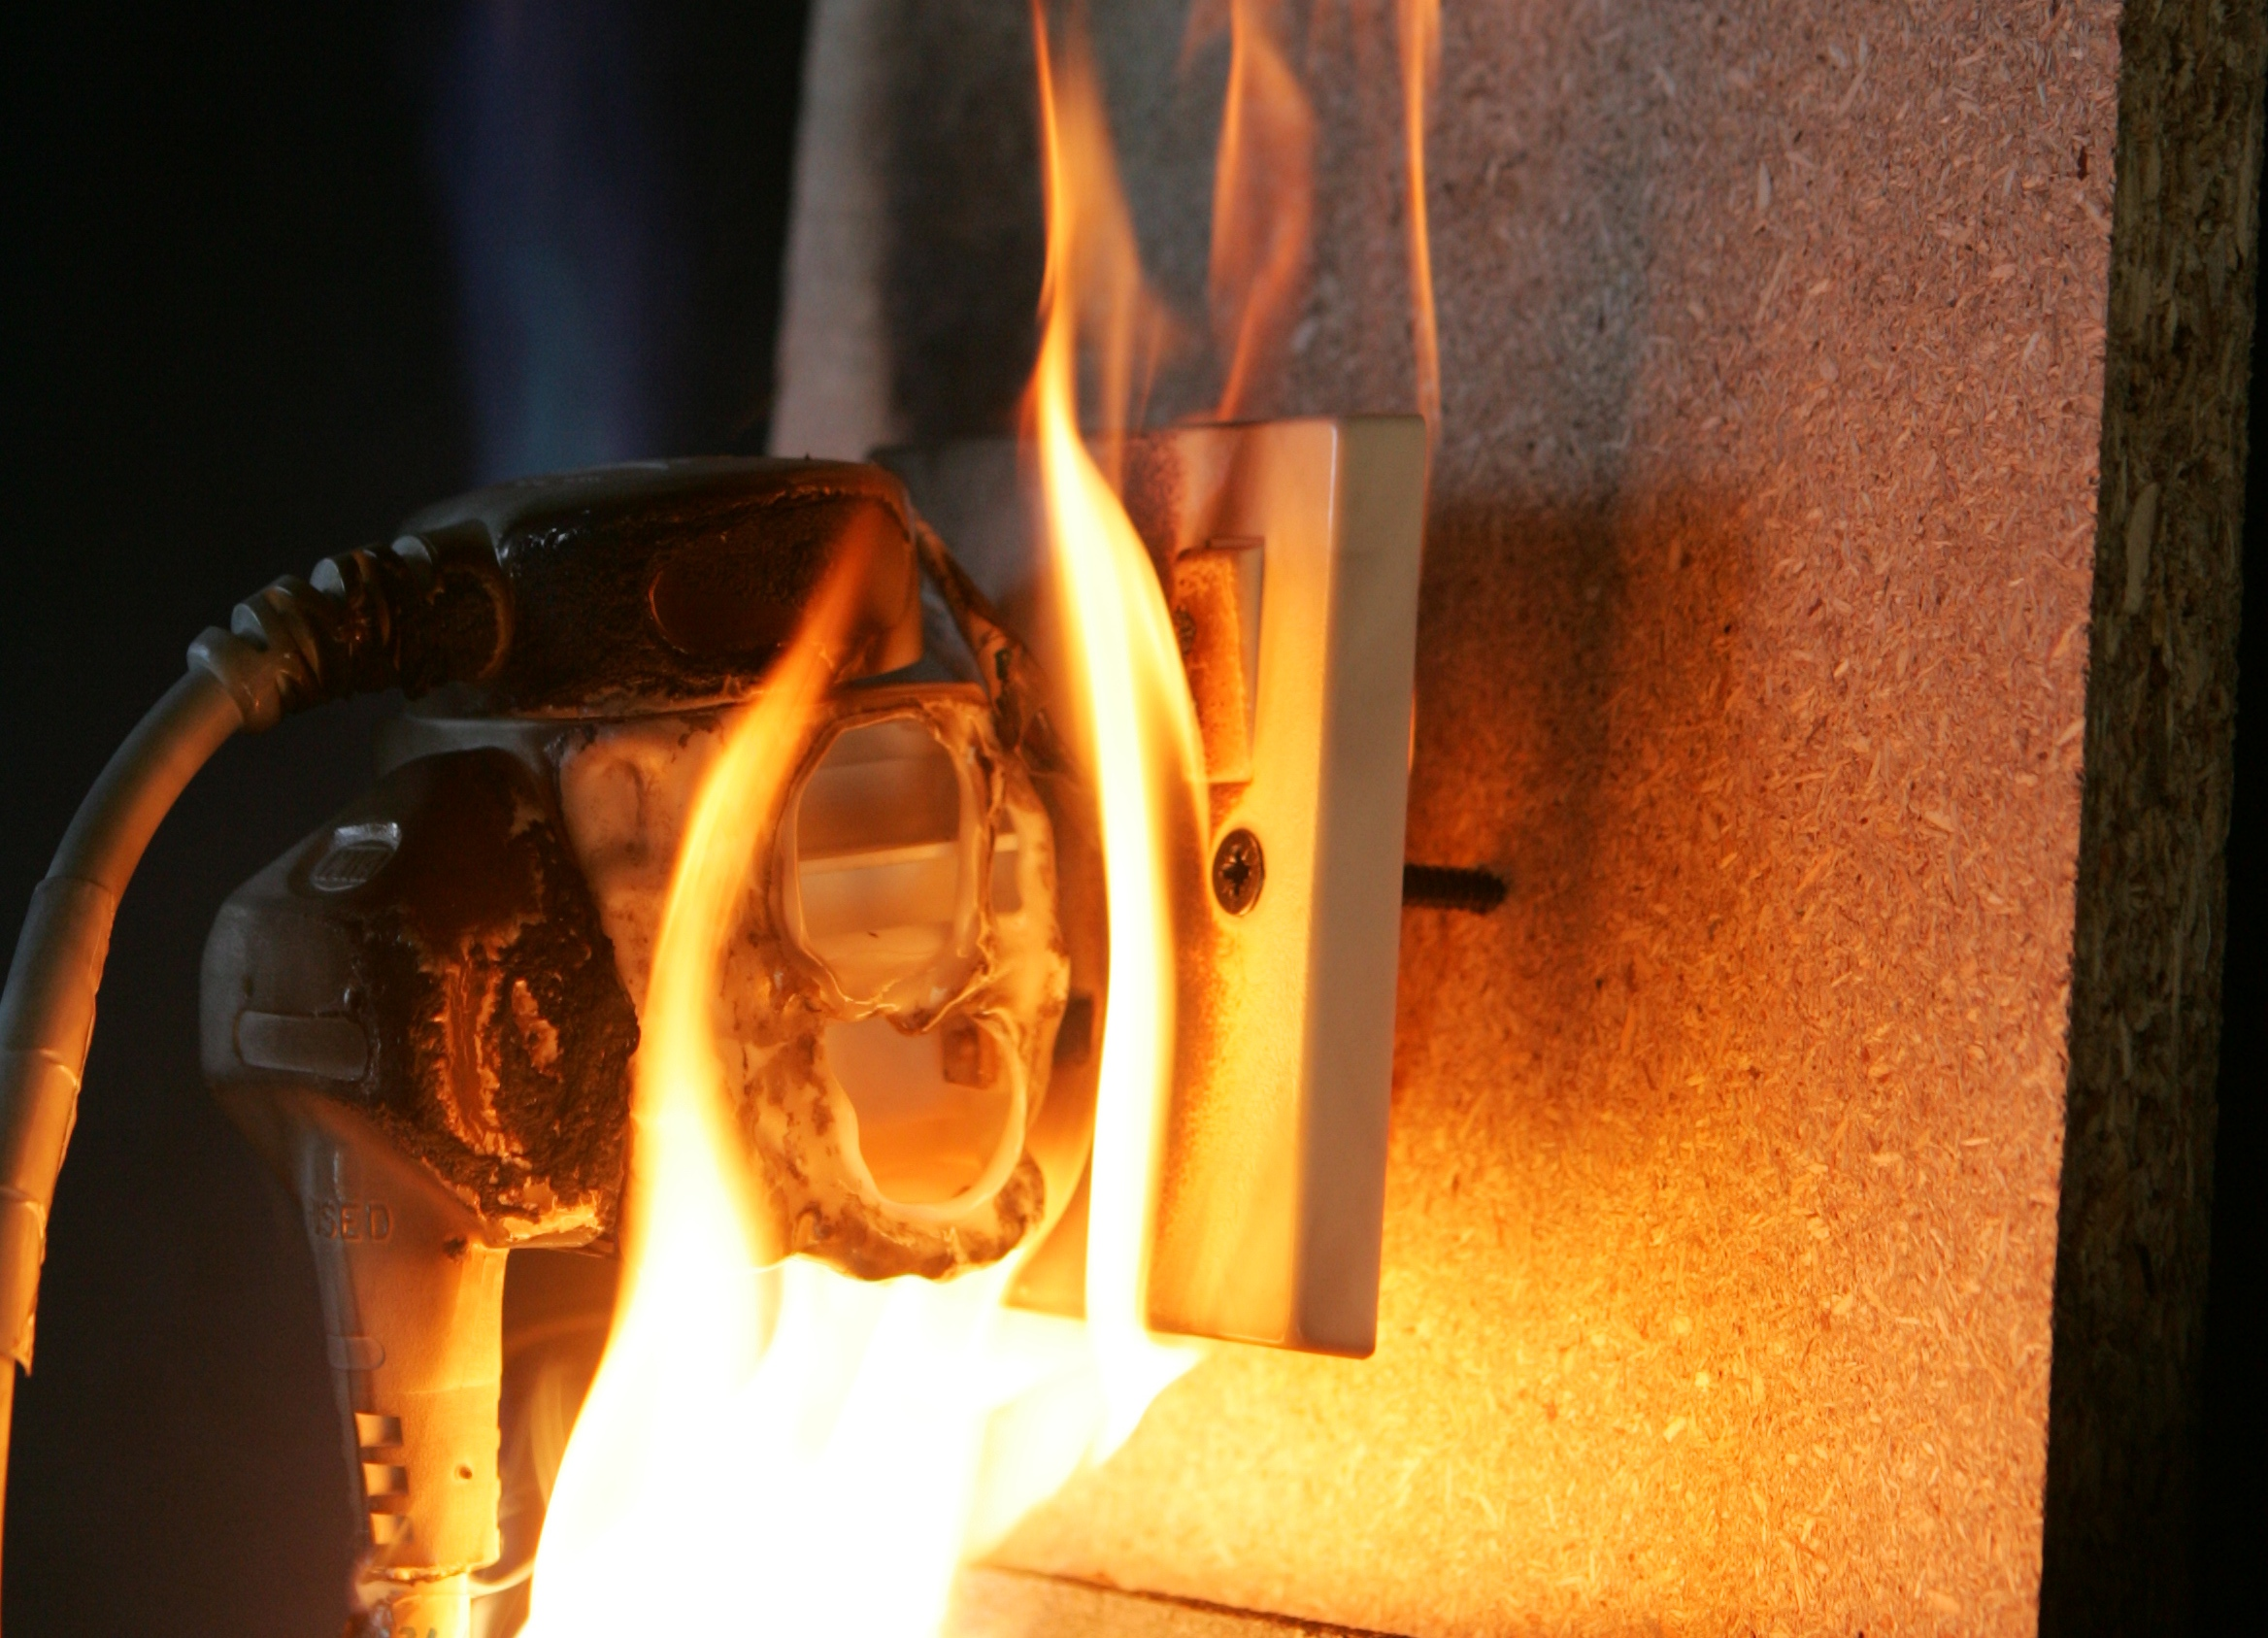 electrical electrical fire rh electricalmedasuo blogspot com electrical wiring in building fires Primary Electrical Fires